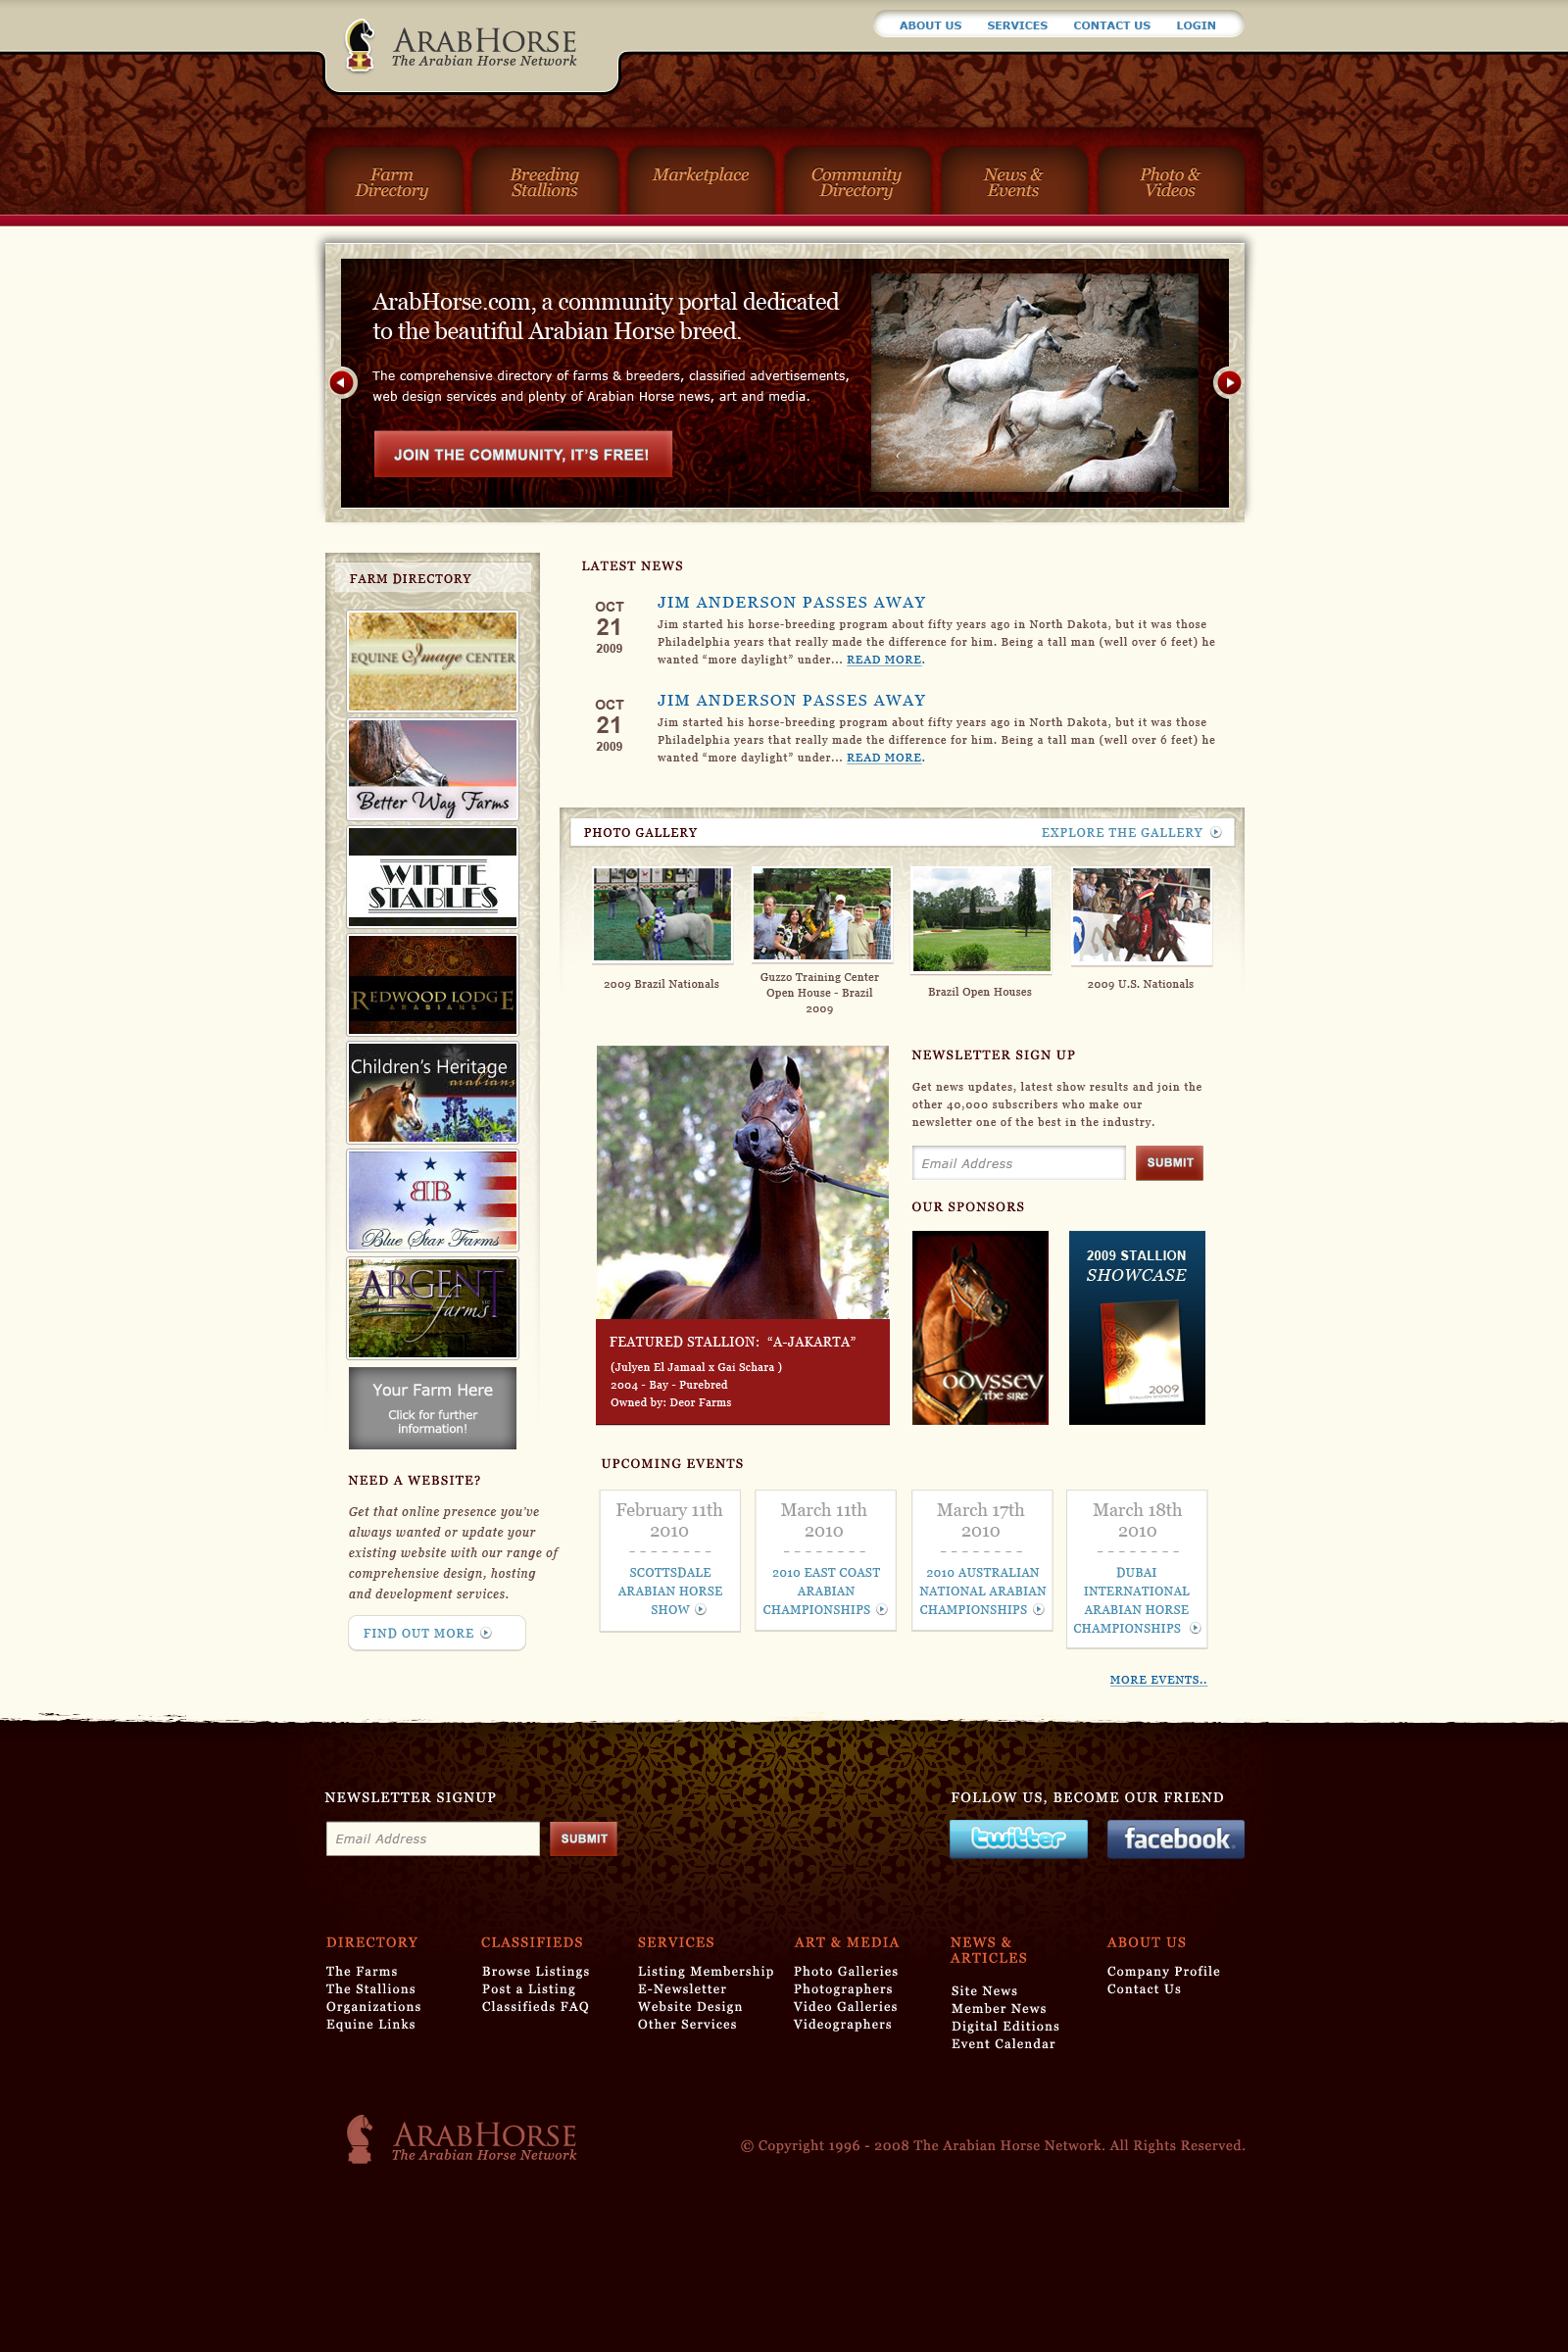 Arabhorses Home Page Design